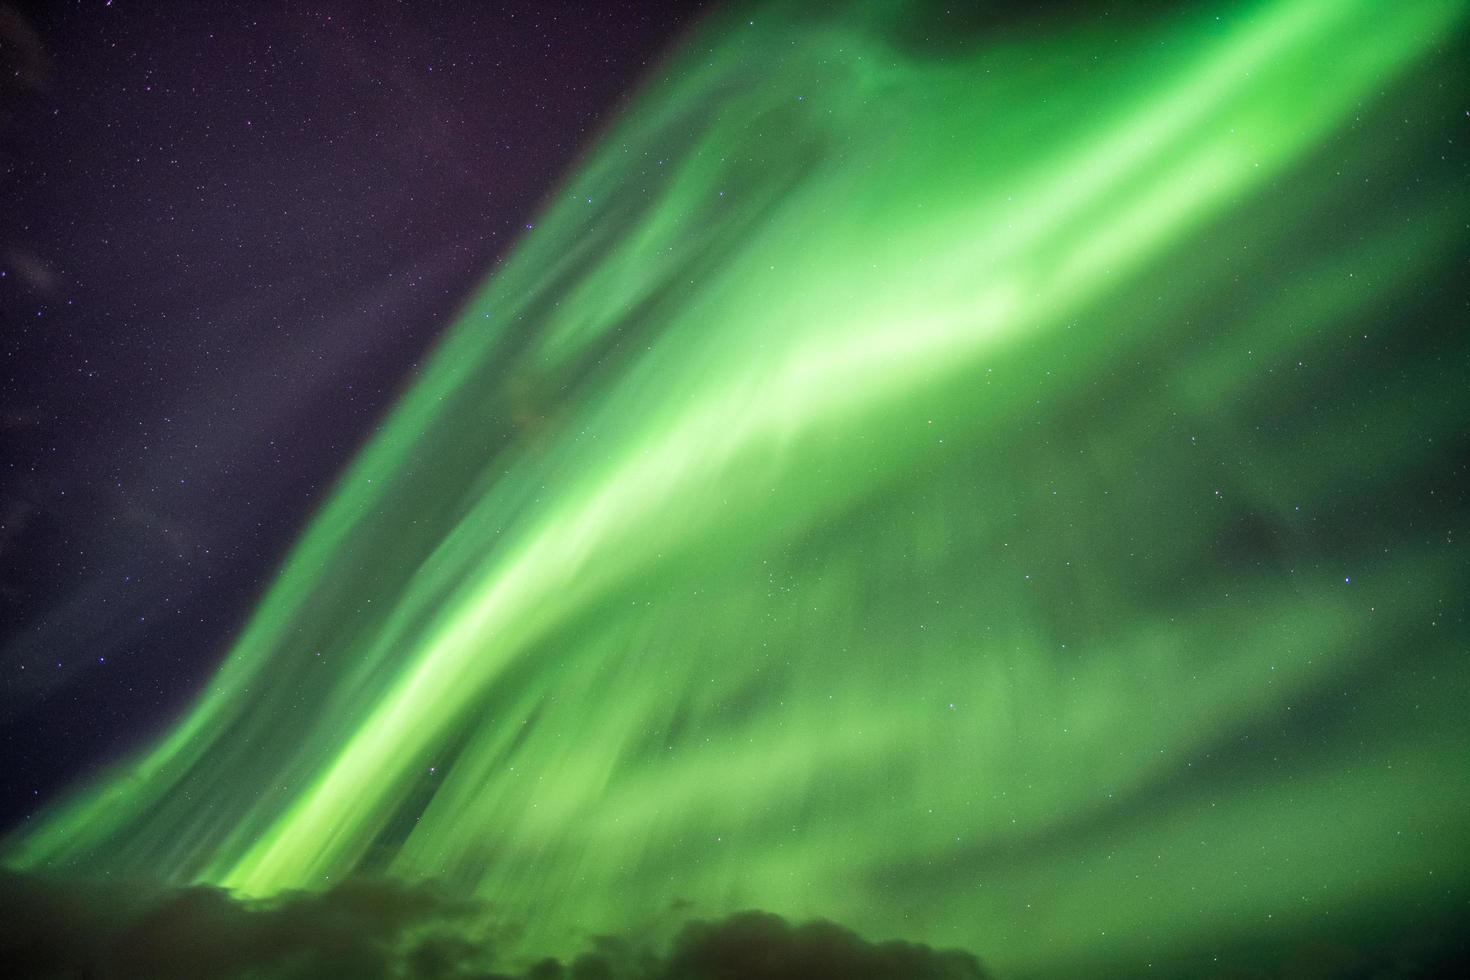 Northern Lights in starry sky photo